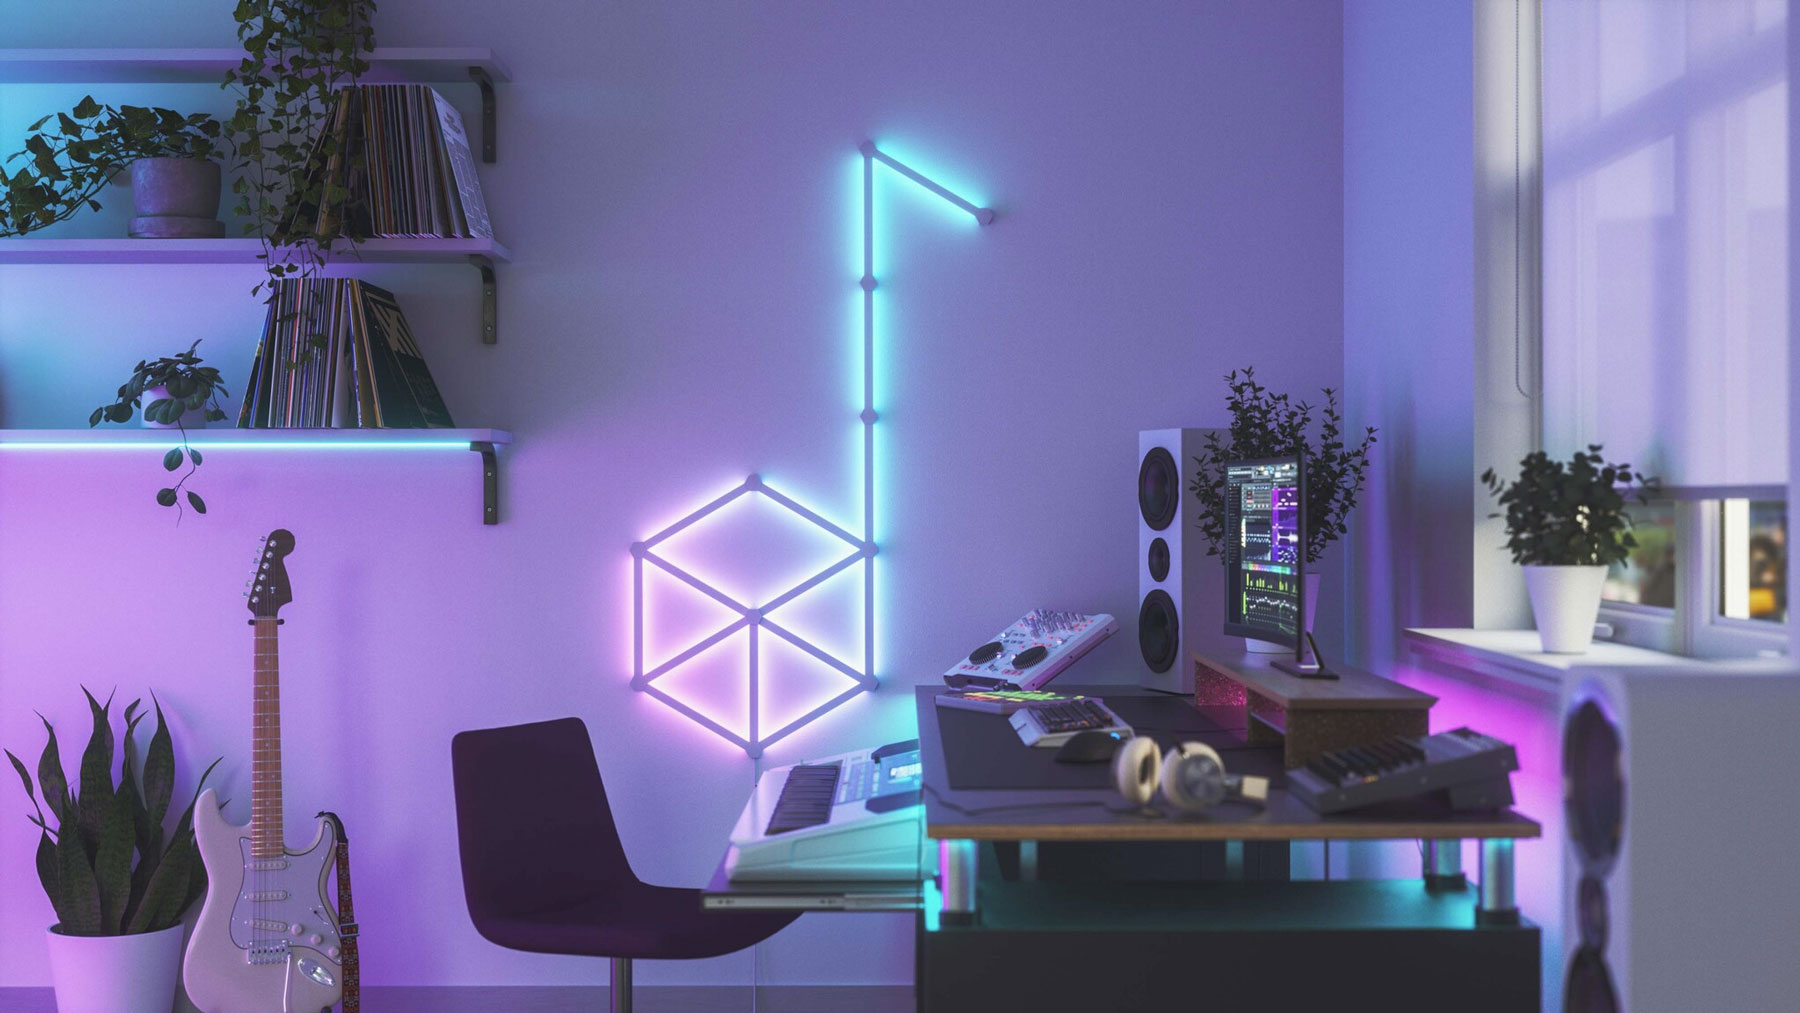 Image of the Nanoleaf Lines arranged upon a wall.